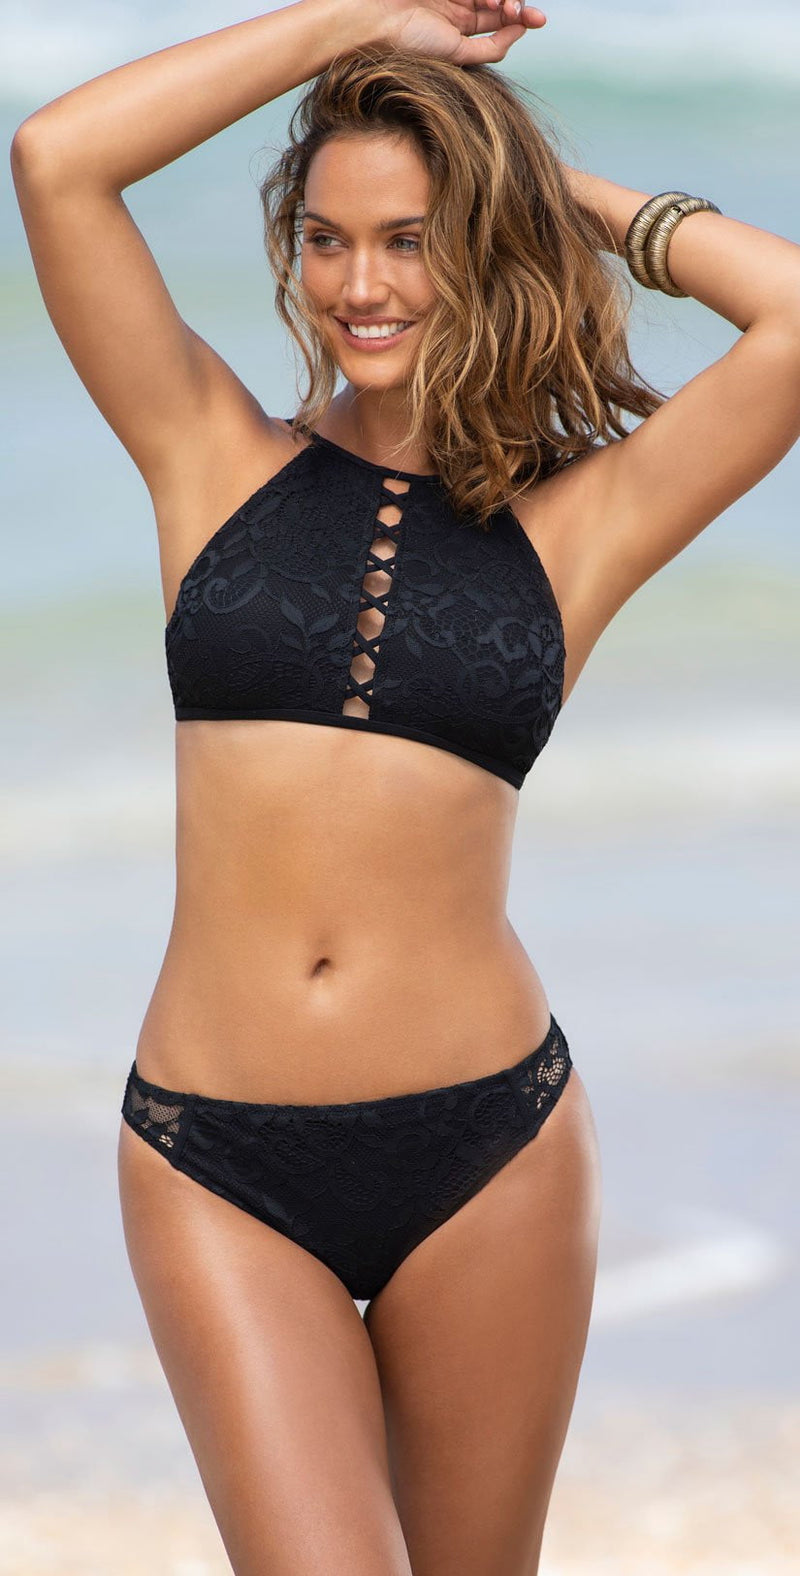 Profile by Gottex Shalimar High Neck Bikini Top E938 1B38 001: